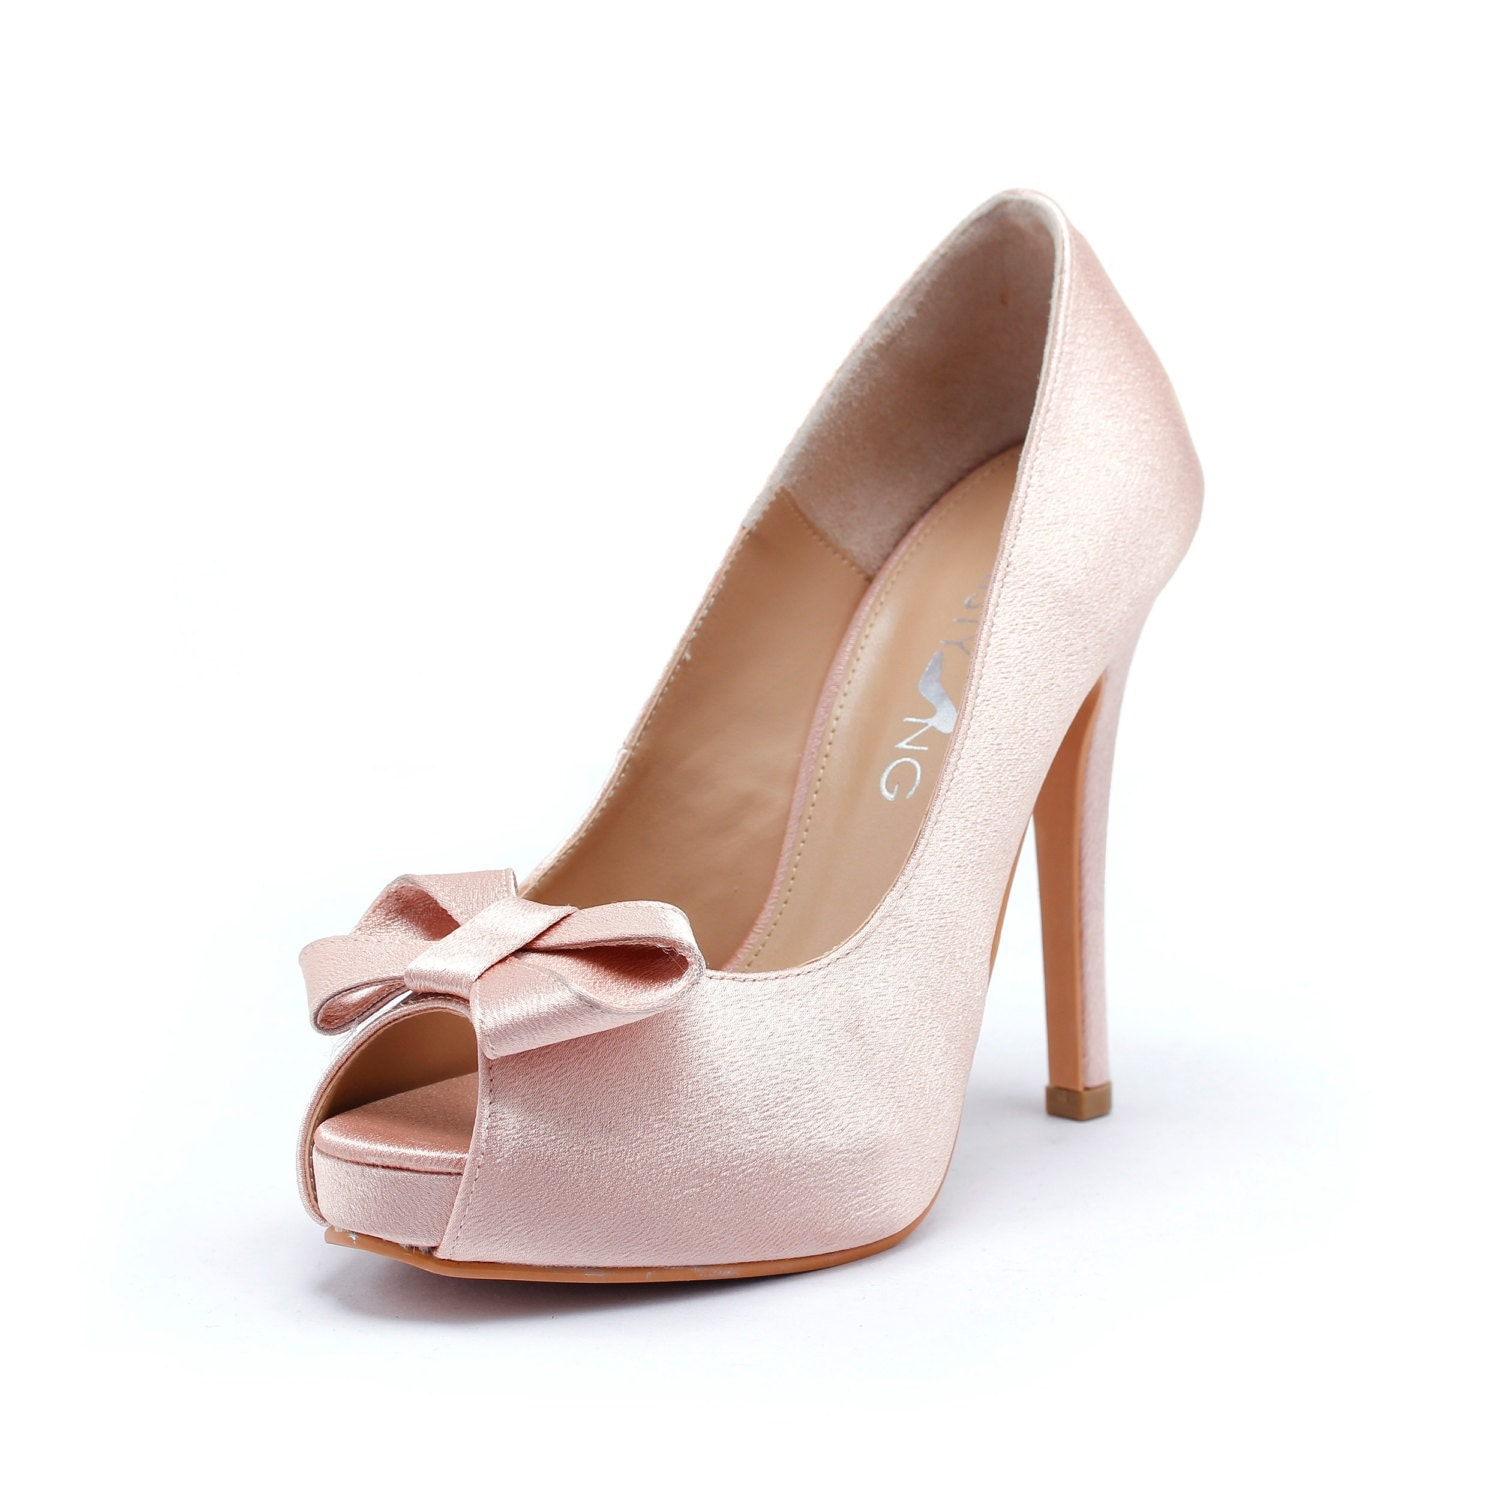 sweetheart wedding shoes in blush silk satin